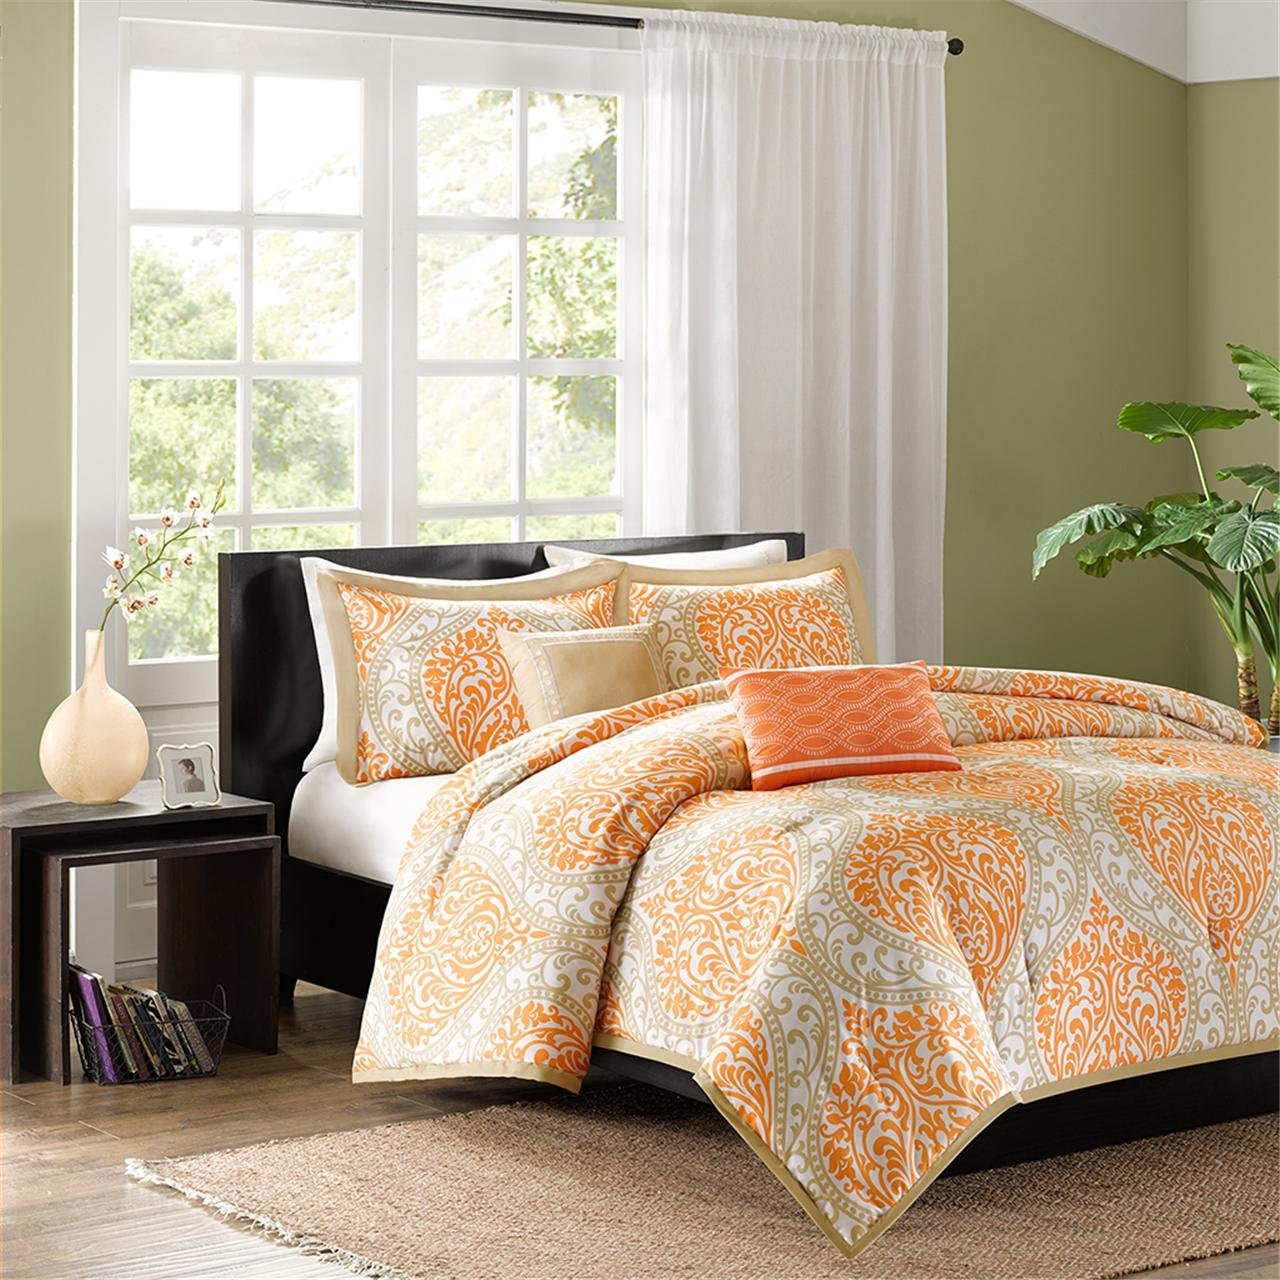 Intelligent Design Senna 5 Piece Comforter Set, Full/Queen, Orange